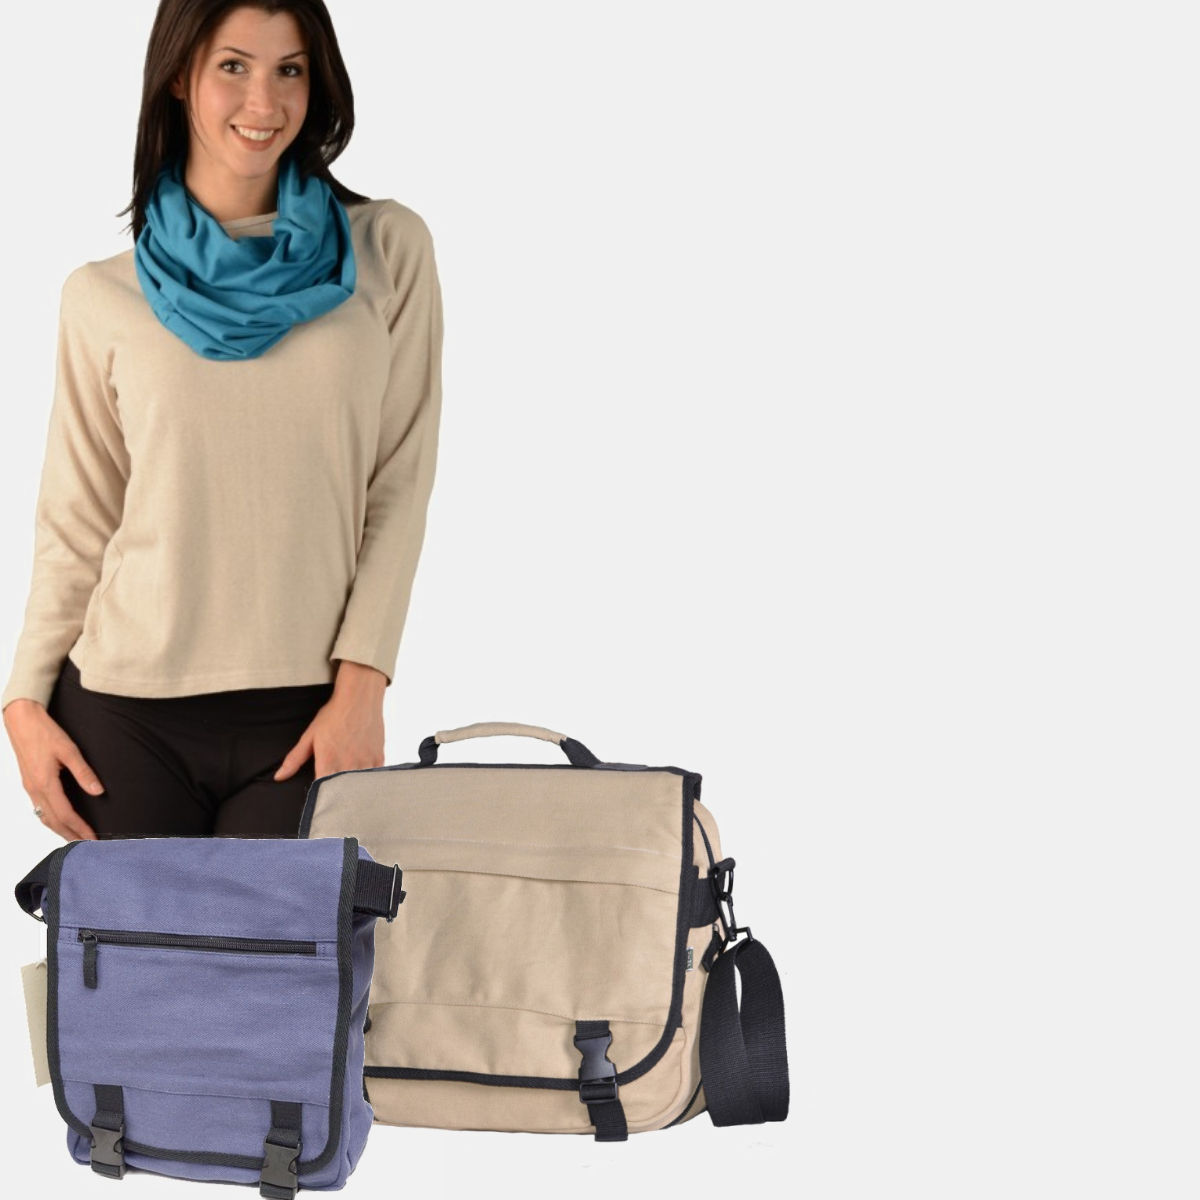 About Efforts - Efforts Industries has supplied eco-friendly Hemp fabrics to wholesalers, designers, and other environmentally conscious businesses across North America since 1994. Today, we offer more than 20 different hemp & bamboo fabrics.At Efforts, we seek out quality materials for our products. We ensure that care is taken with the tailoring of our clothes and accessories. And we look to create an enduring style.Currently, 74 of our products are made right here in Canada - that's over 60% of our product line! We are proud to let you know that this number grows steadily as we add new items each season.